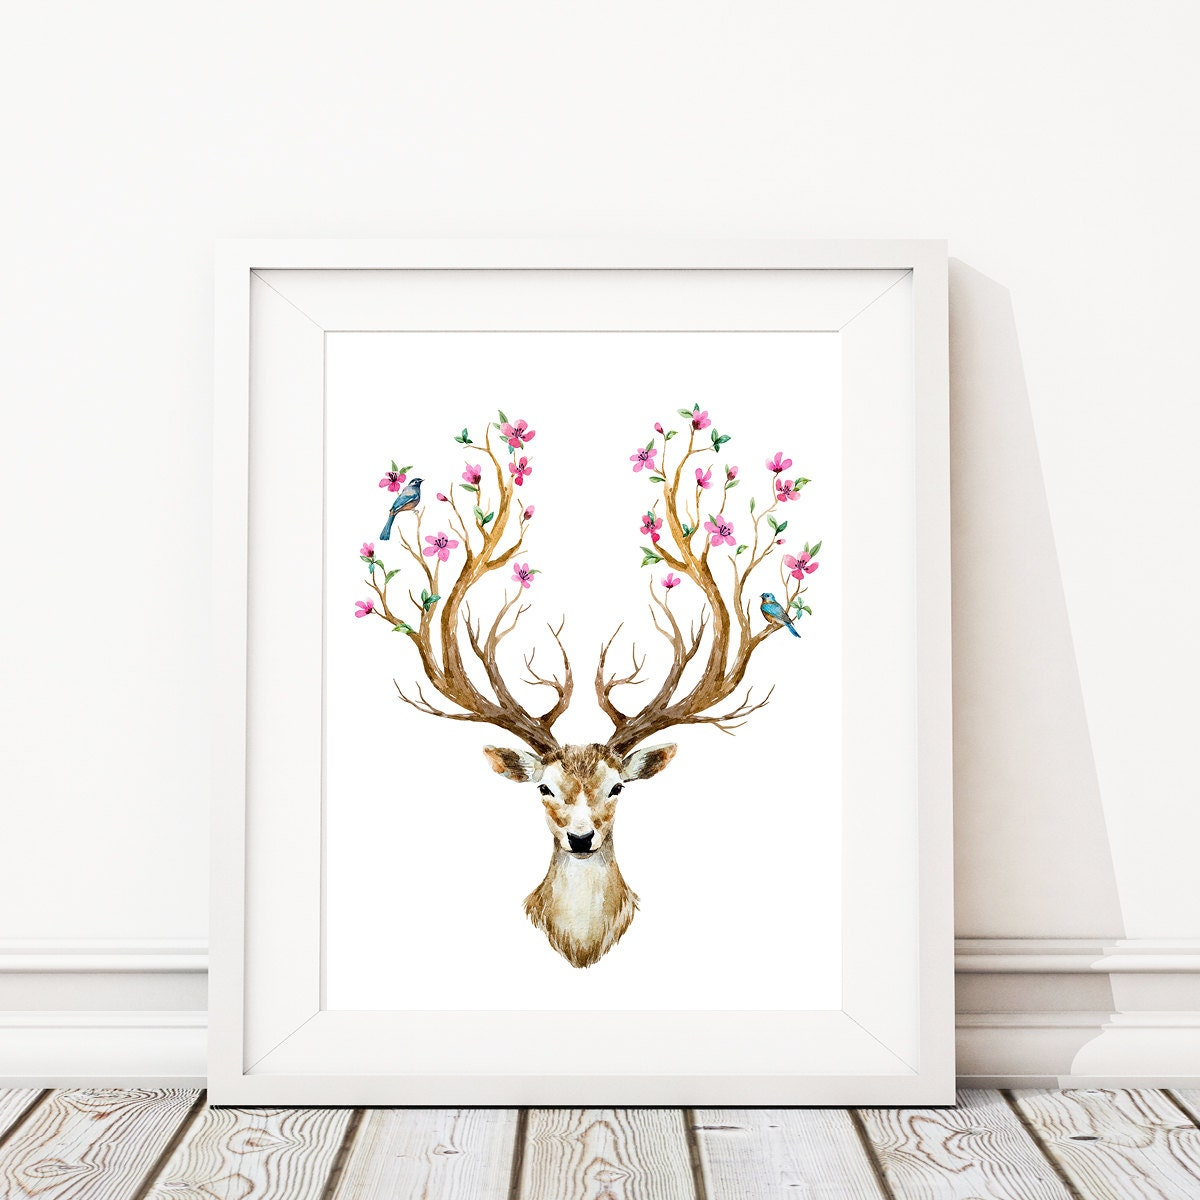 Woodland Nursery Decor Girl Wall Art Deer Antler Wall Decor, Deer Prints,  Animal Prints, Boho Prints For Nursery. Cherry Tree. Birds. S480